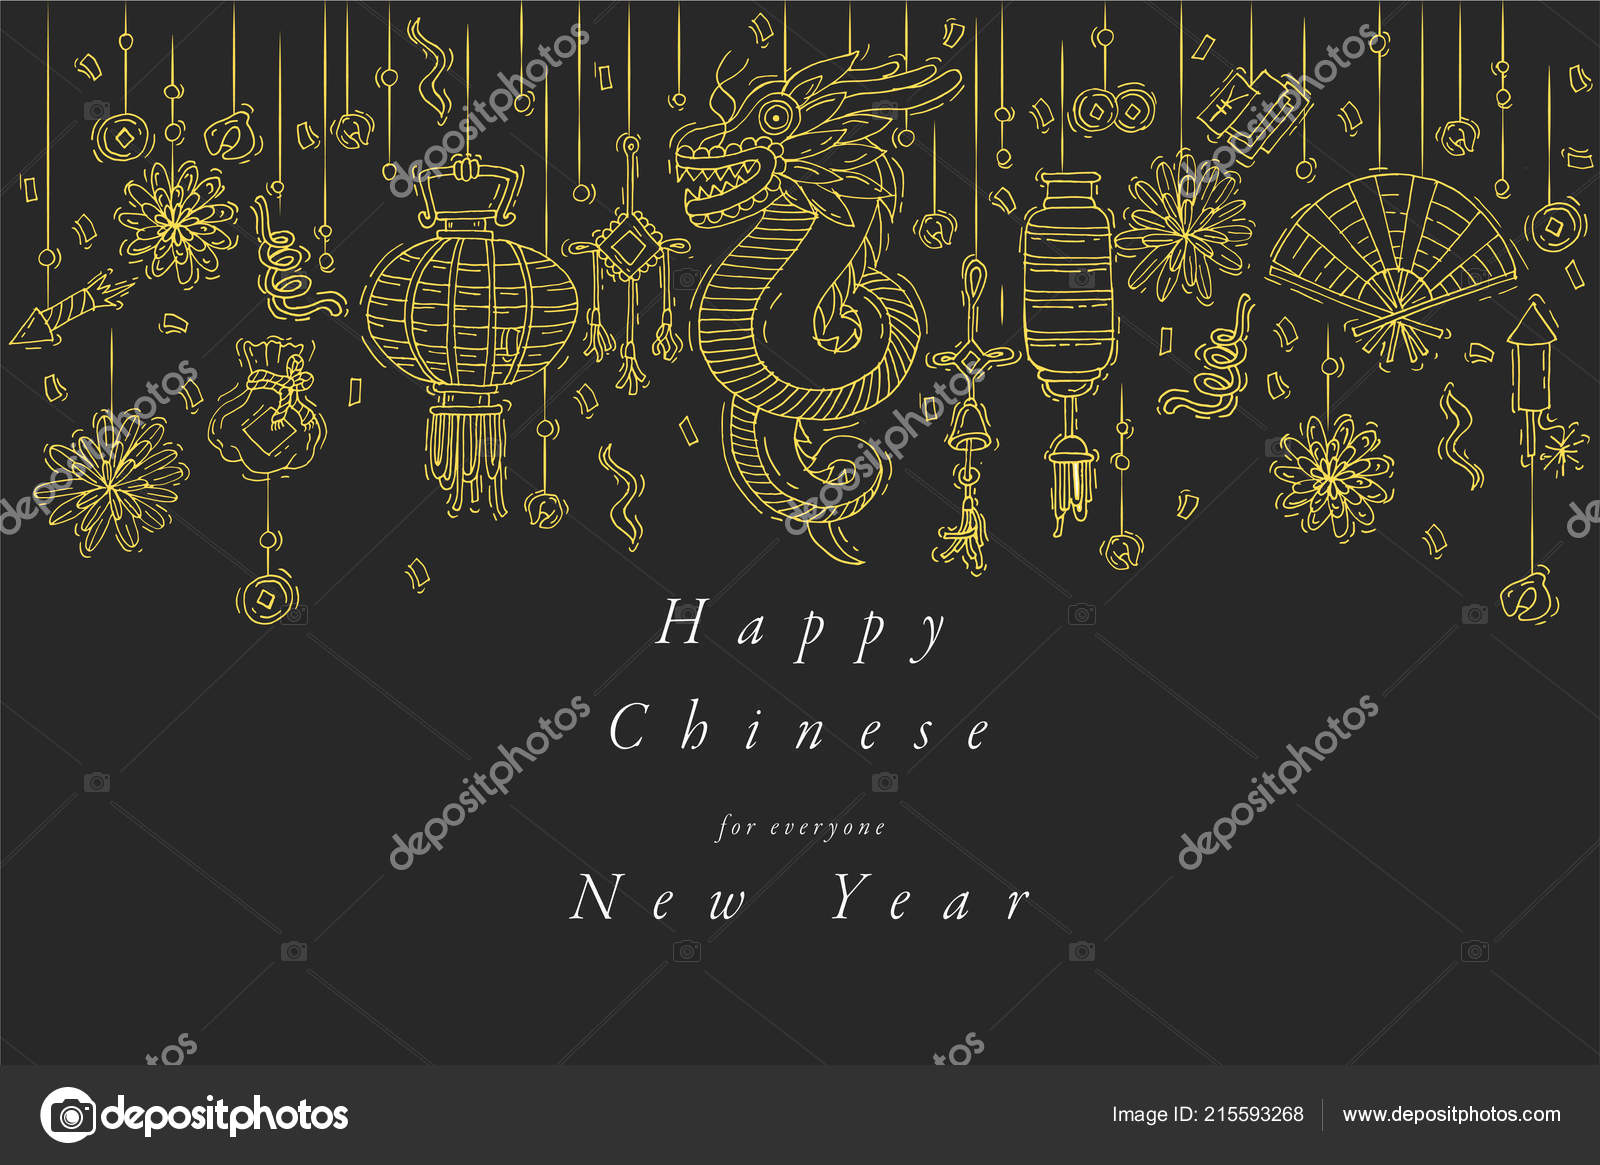 vector hand draw design for chinese new year greetings card golden color typography and icon